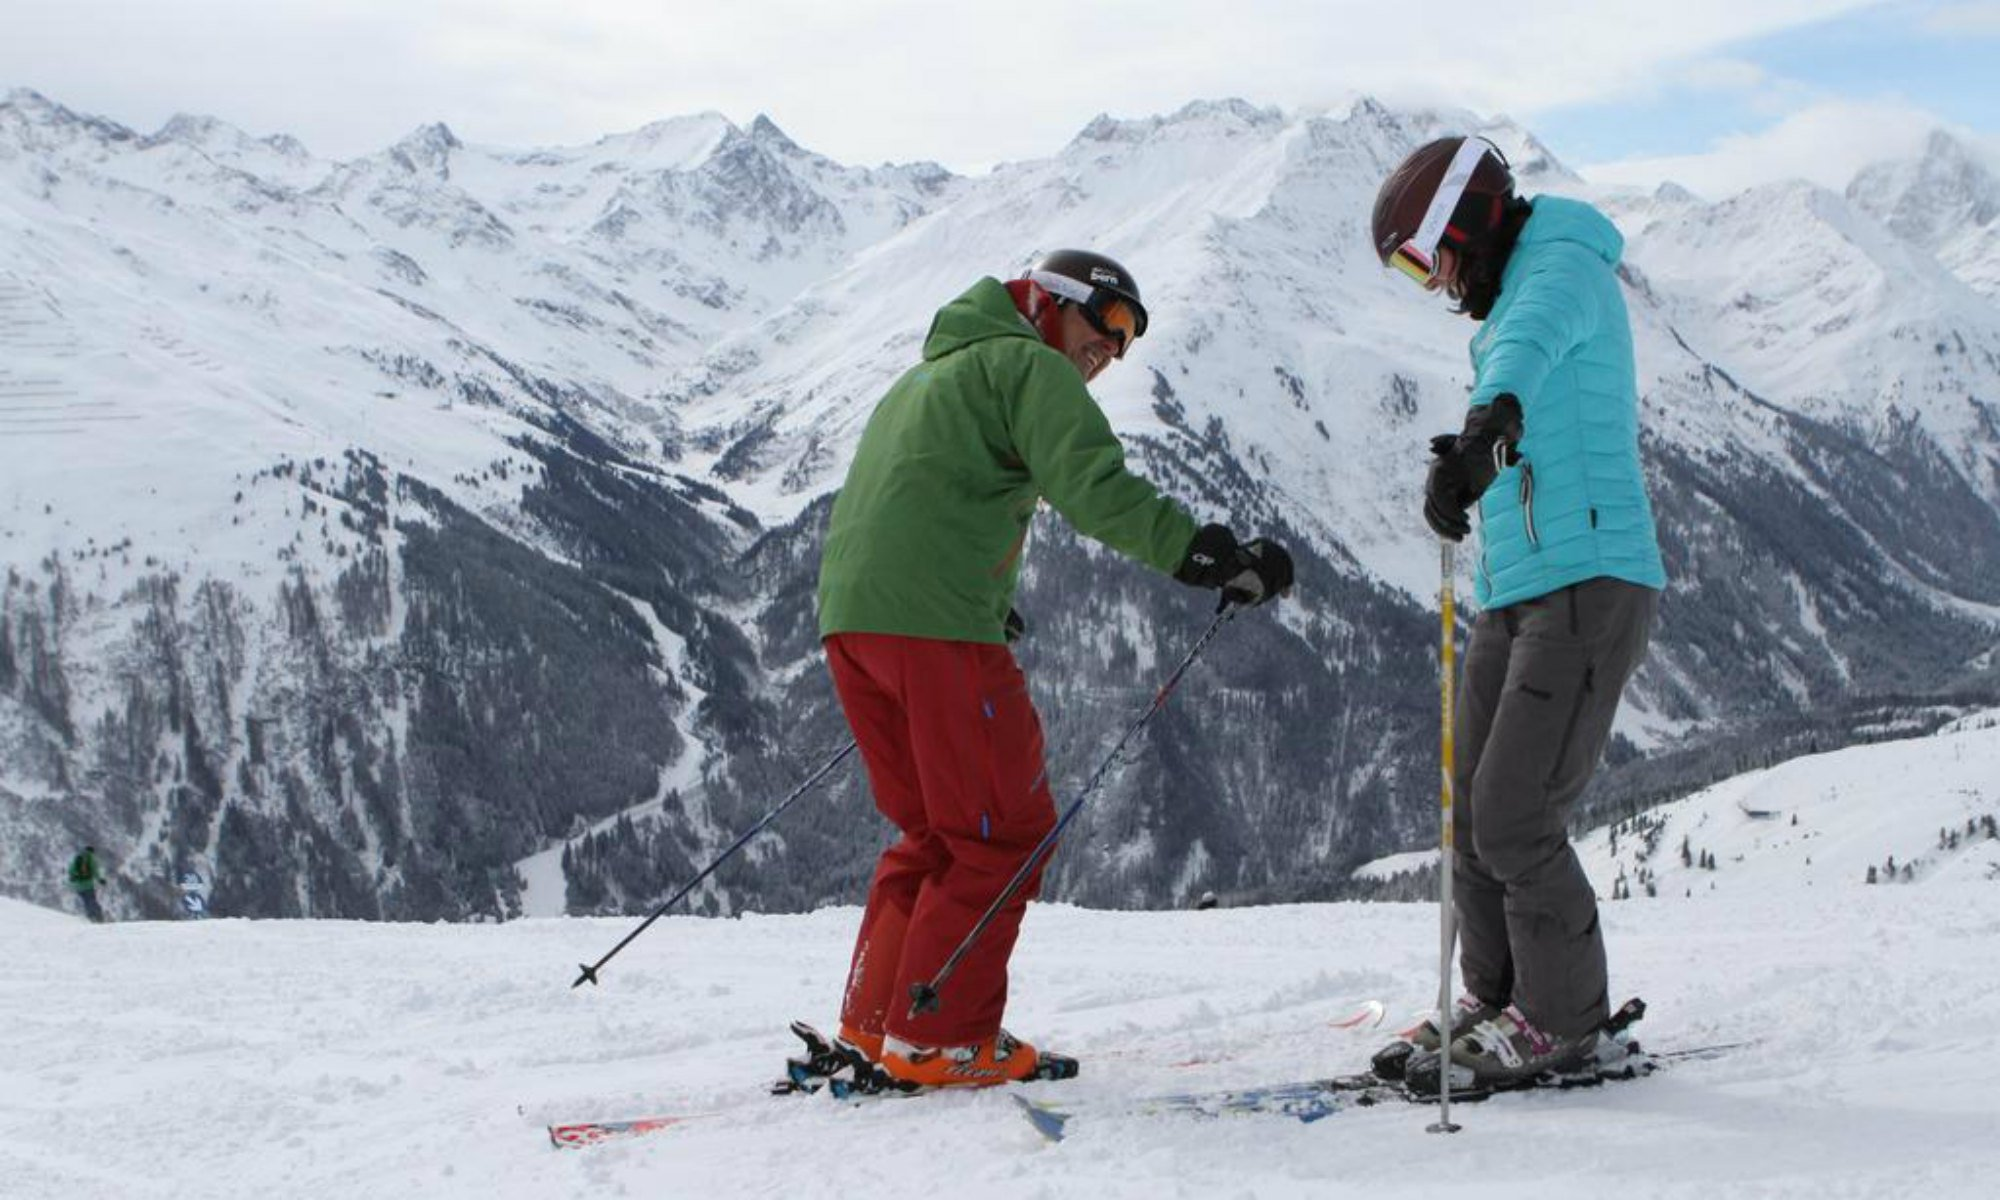 A private ski instructor and a skier on a slope in the Austrian resort Lech.